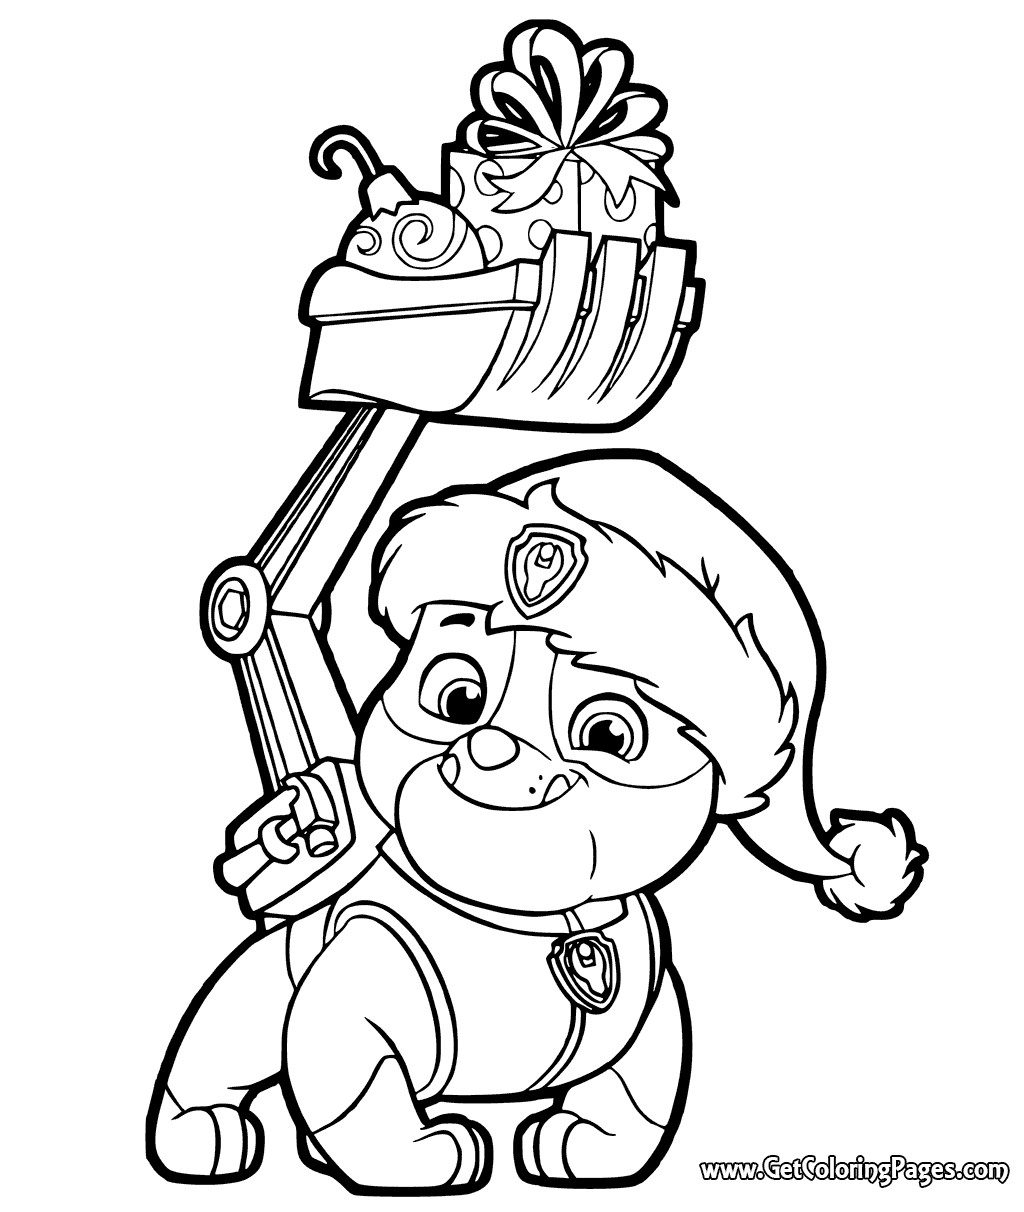 Paw Patrol Coloring Pages Marshall Coloring Books Fantastic Marshall Paw Patrol Coloring Page Books